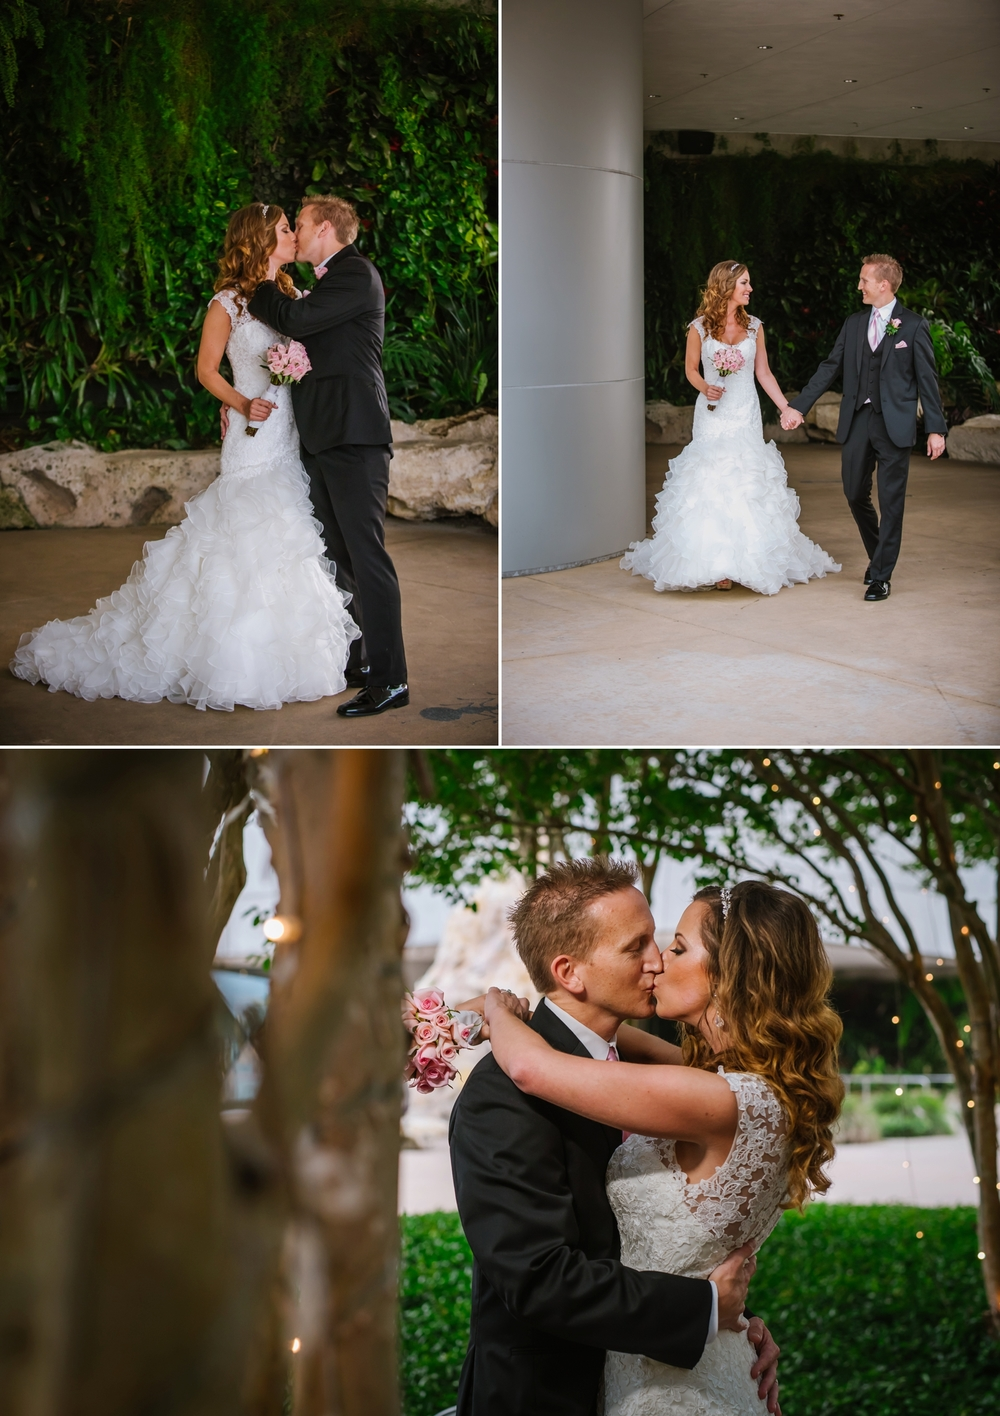 ashlee-hamon-photography-st-pete-salvador-dali-museum-wedding_0020.jpg